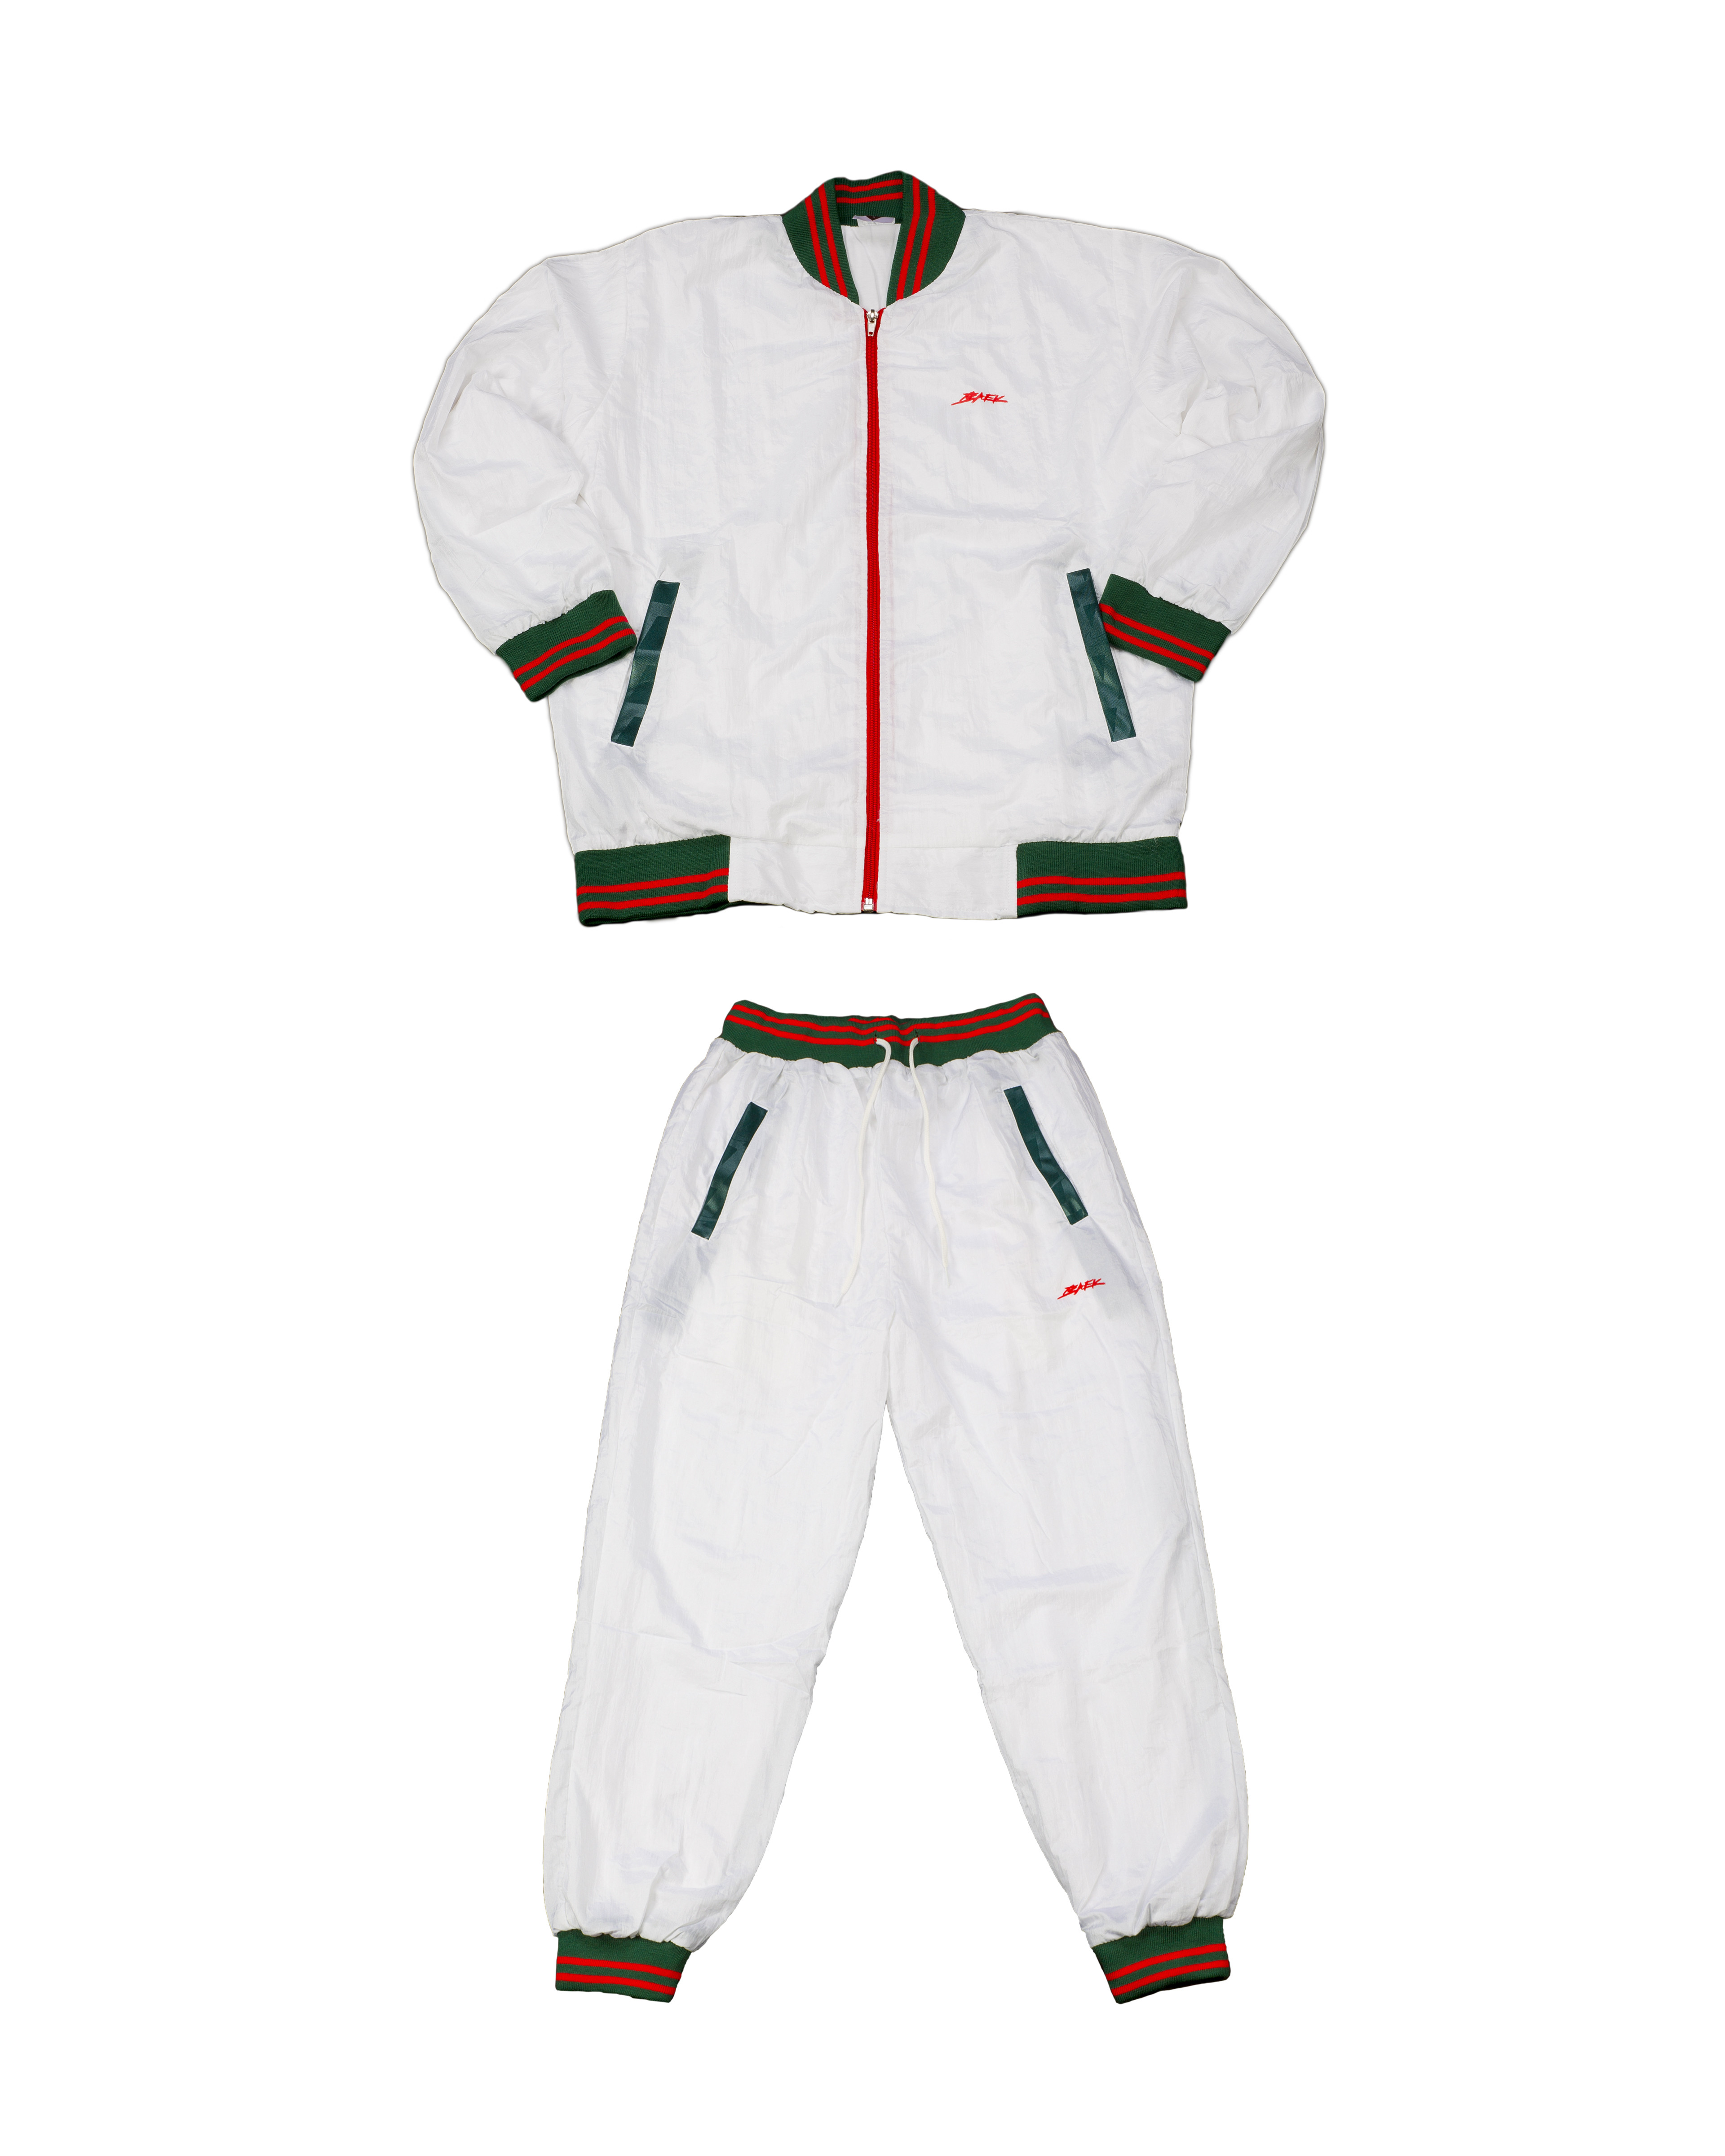 BAEK TRACKSUIT - GREEN/RED